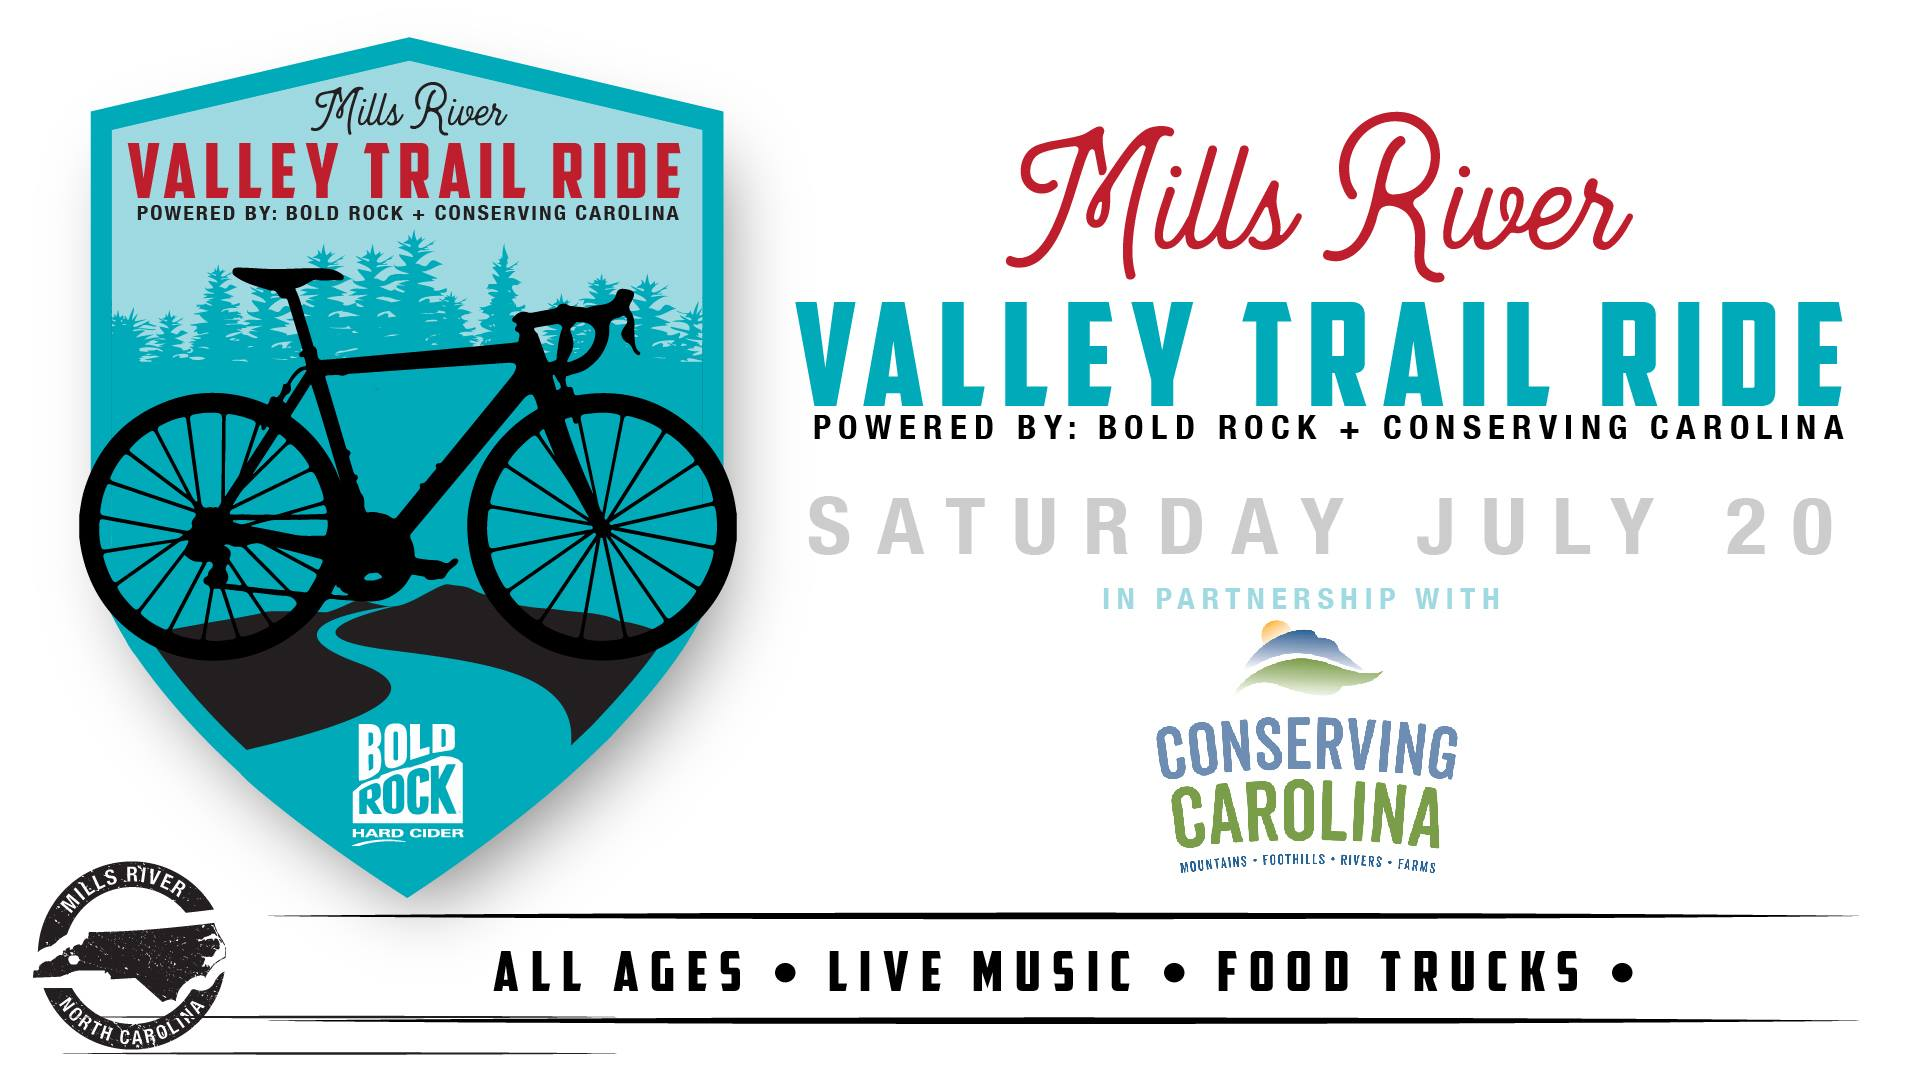 Mills River Valley Trail Ride